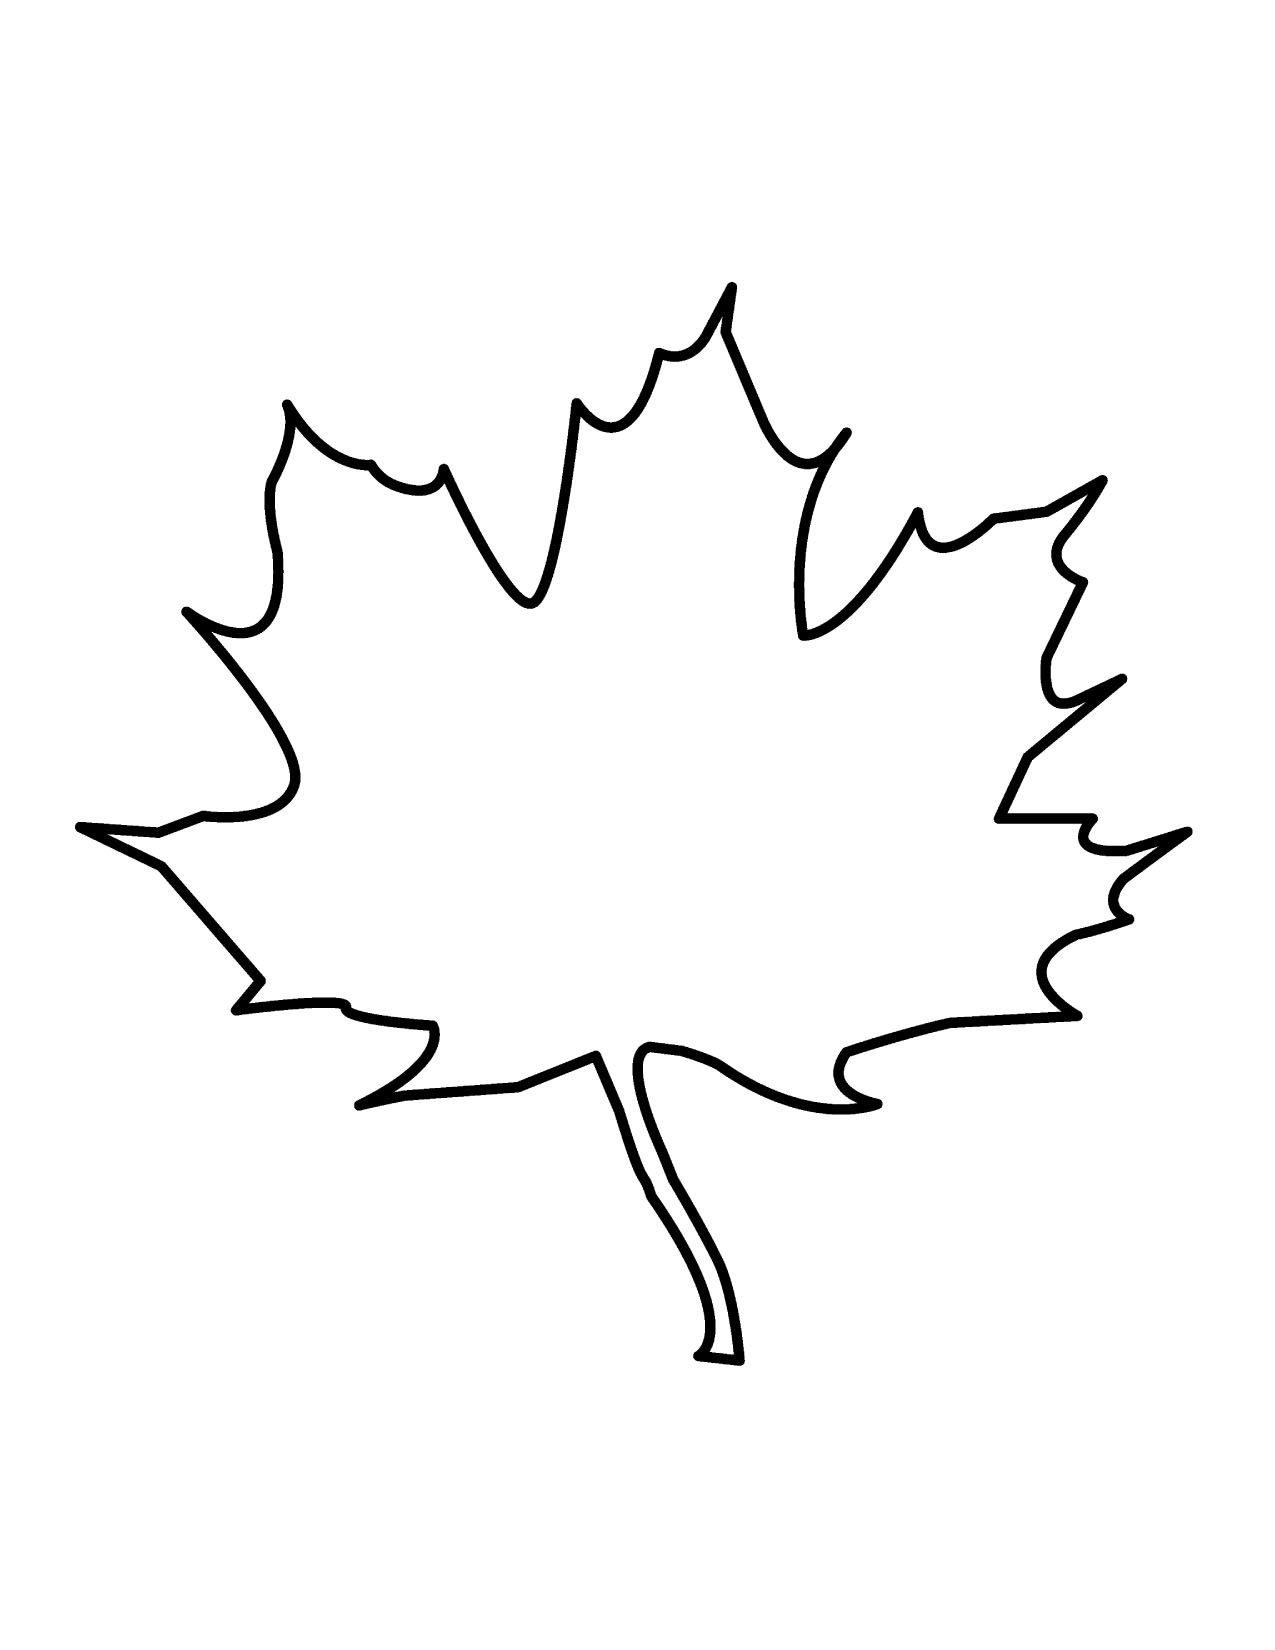 Drawings Of Leaf